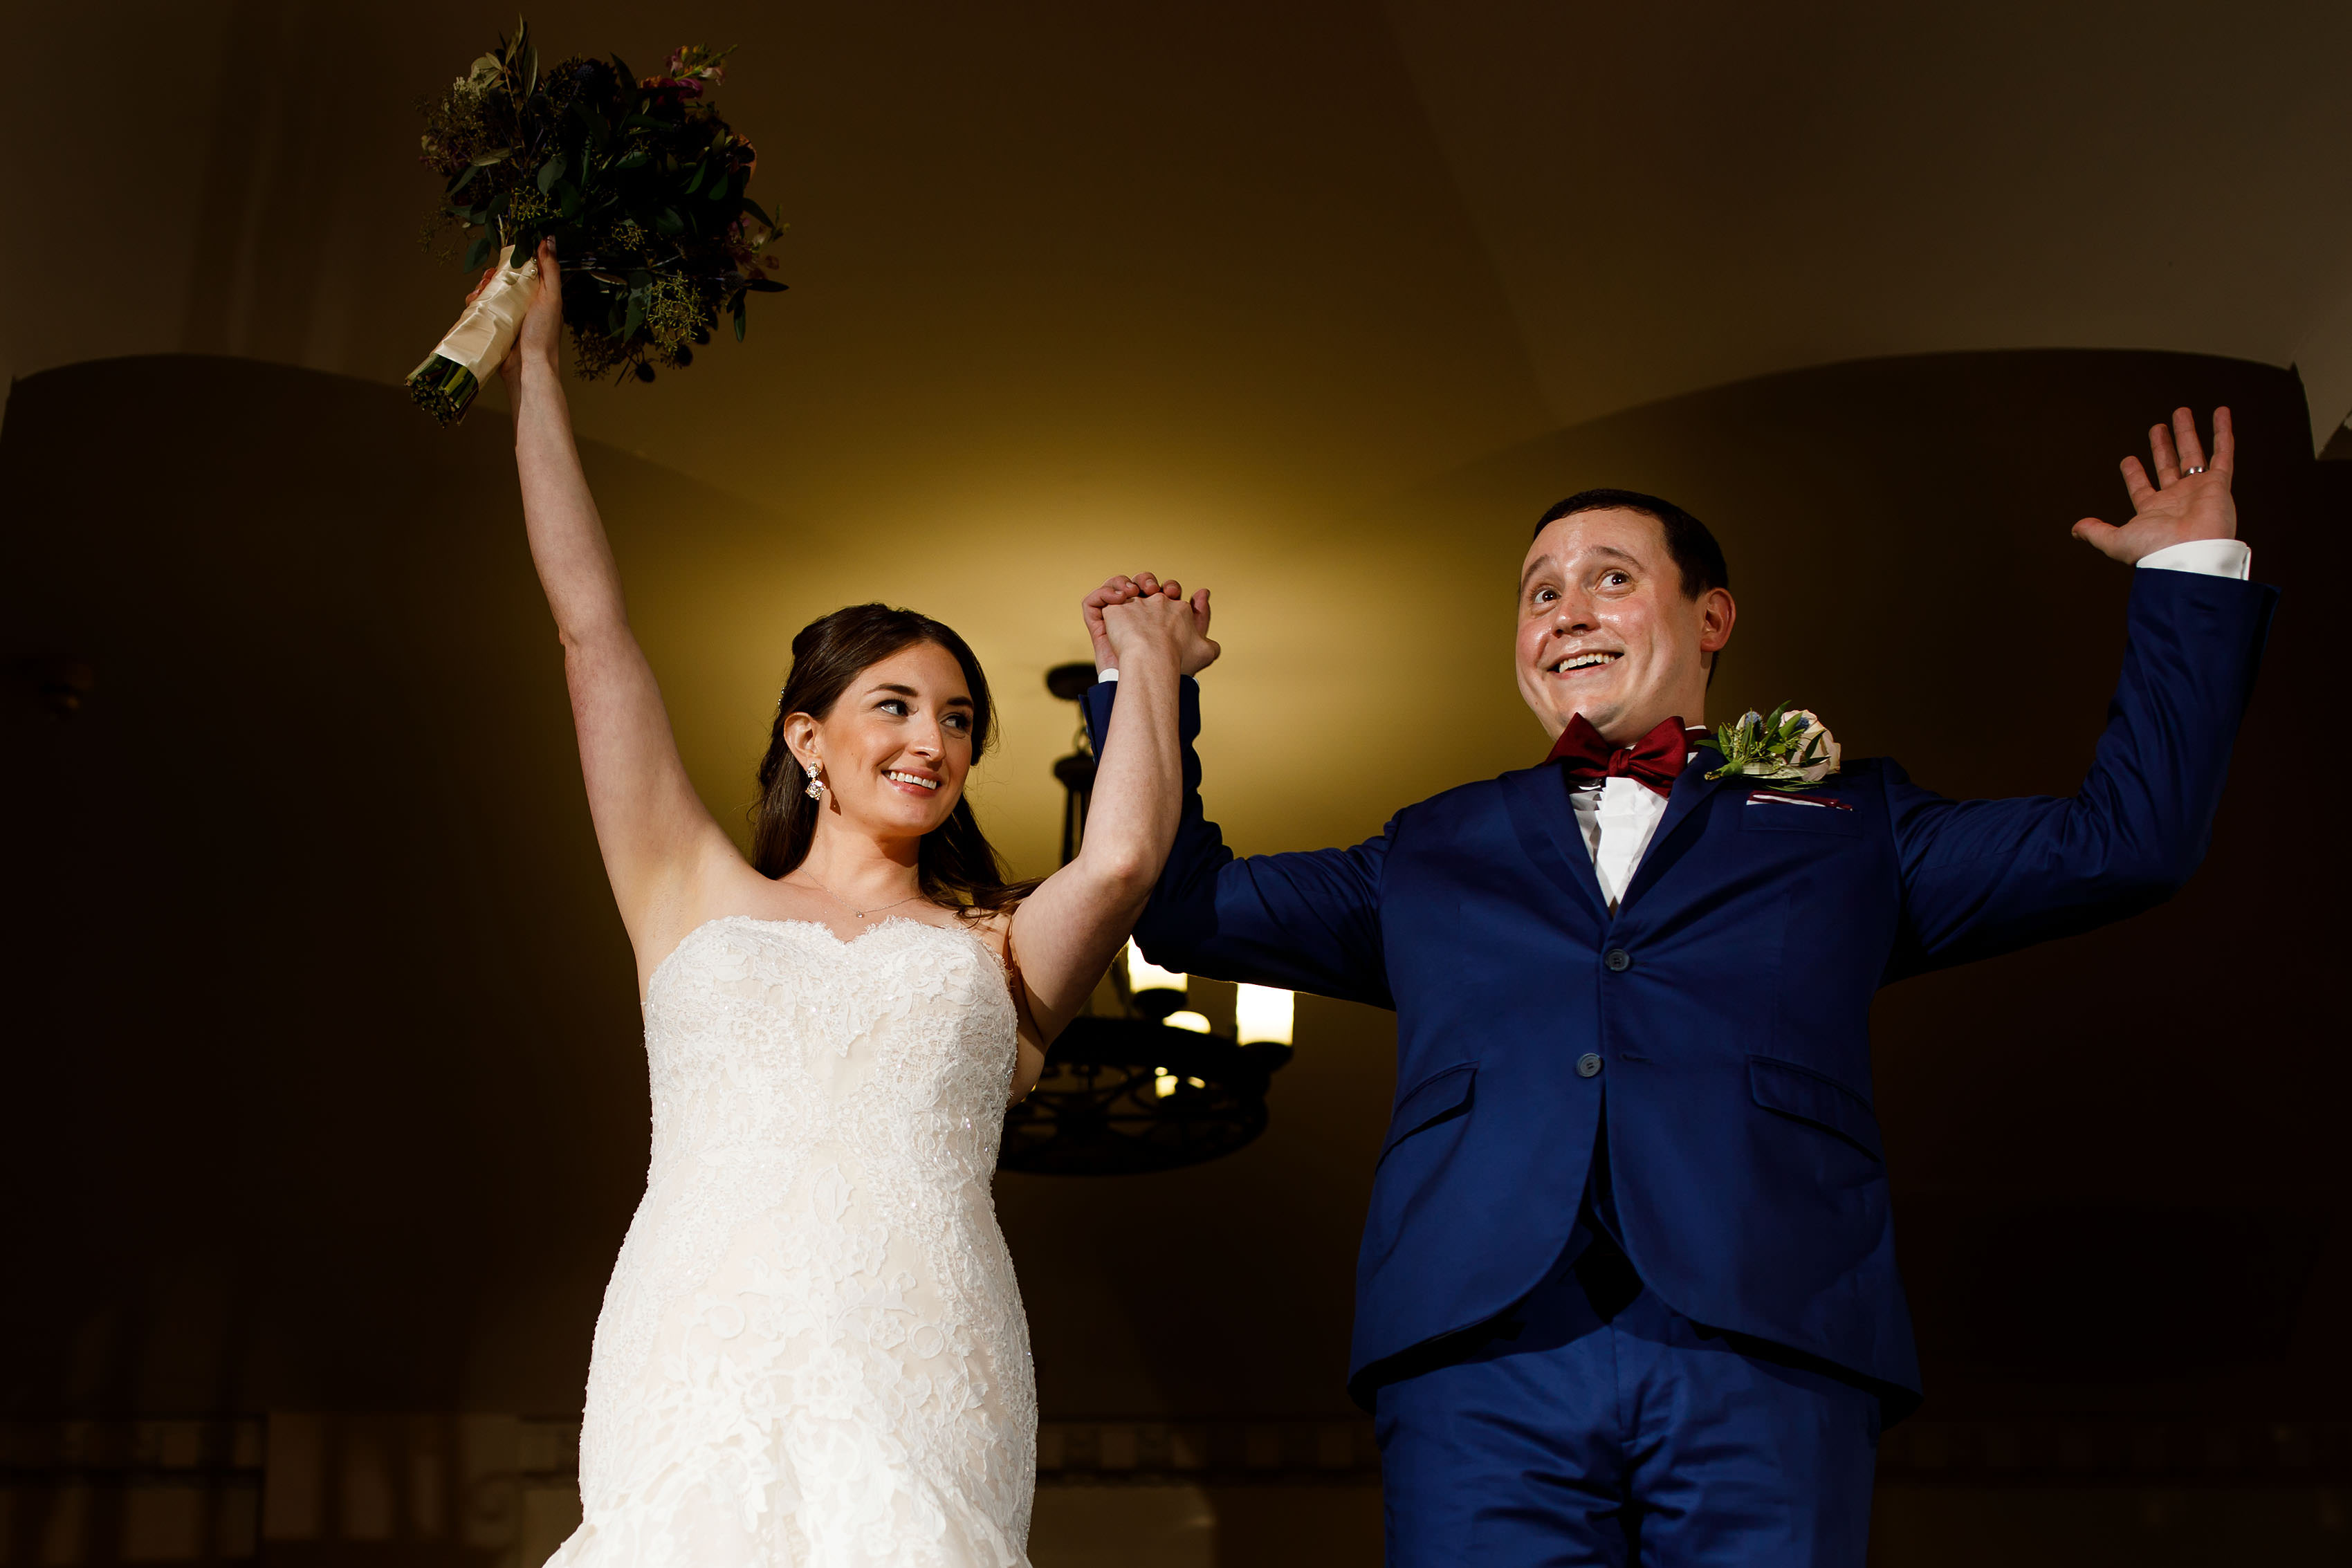 The couple celebrate during their entrance